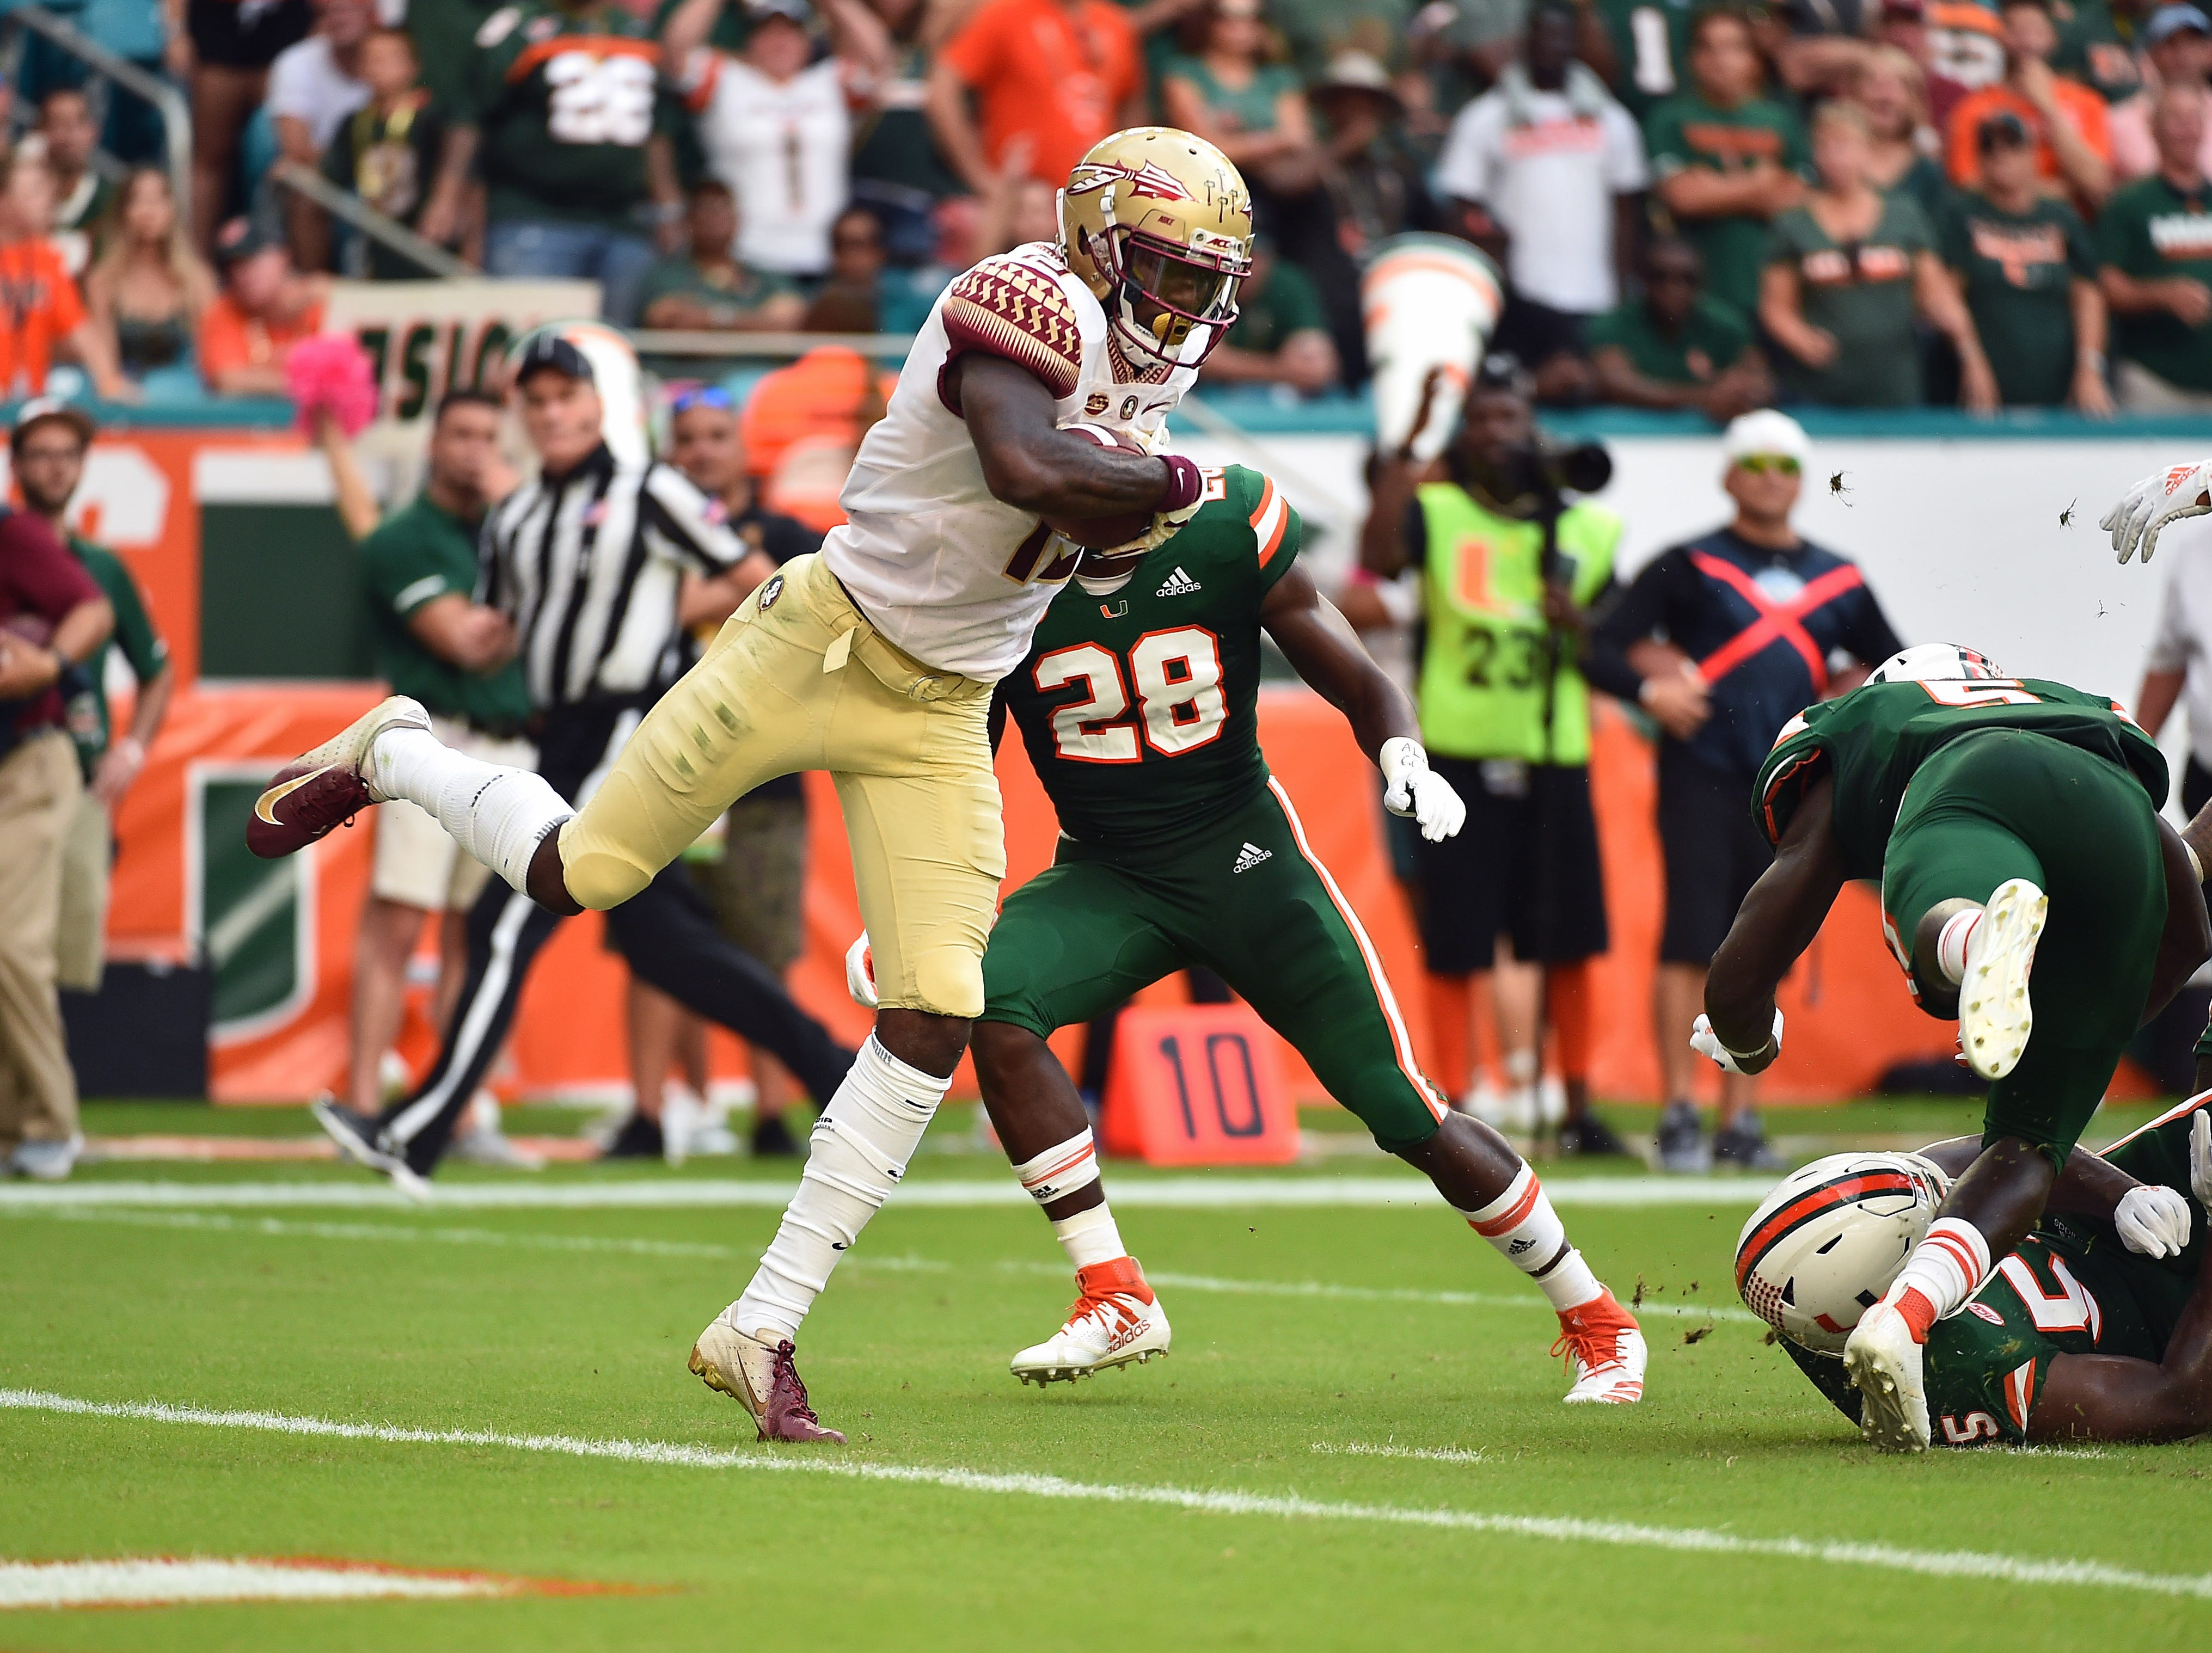 Oct 6, 2018; Miami Gardens, FL, USA; Florida State Seminoles quarterback Beau Fillichio (19) scores a touchdown against the Miami Hurricanes during the first half at Hard Rock Stadium. Mandatory Credit: Jasen Vinlove-USA TODAY Sports